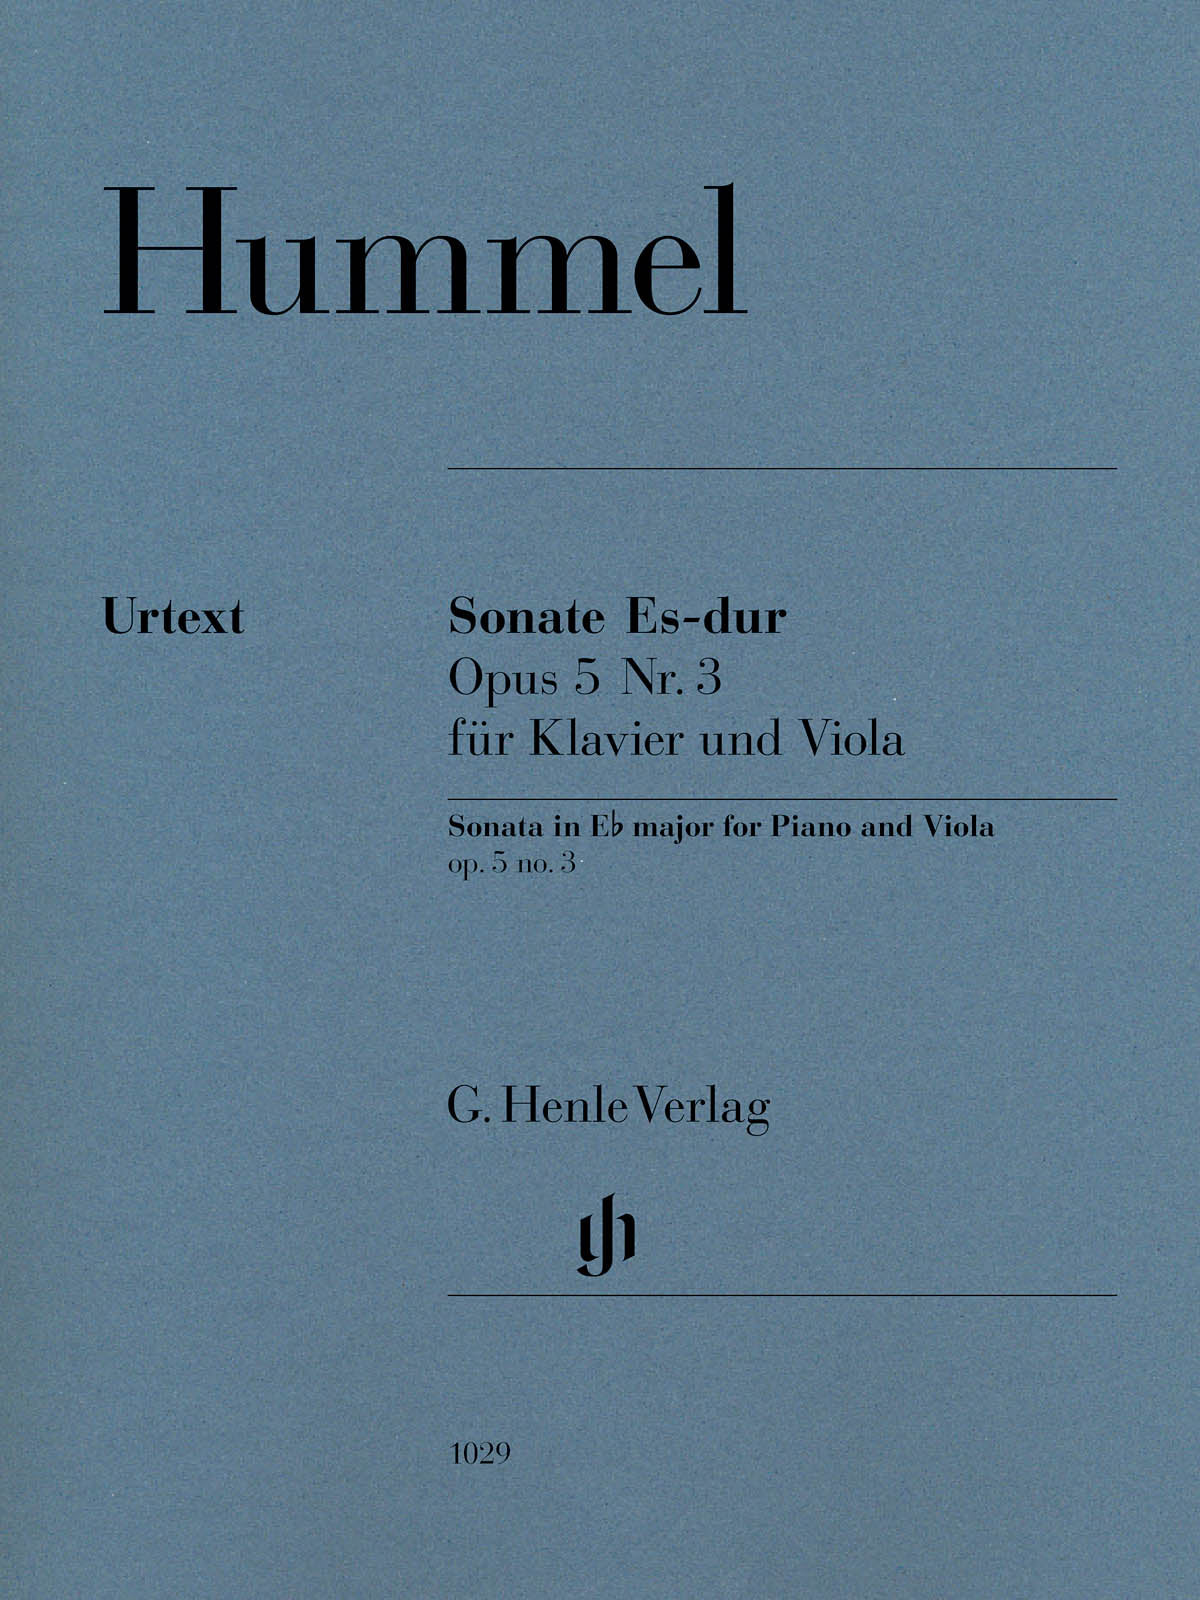 Hummel: Viola Sonata in E-flat Major, Op. 5, No. 3